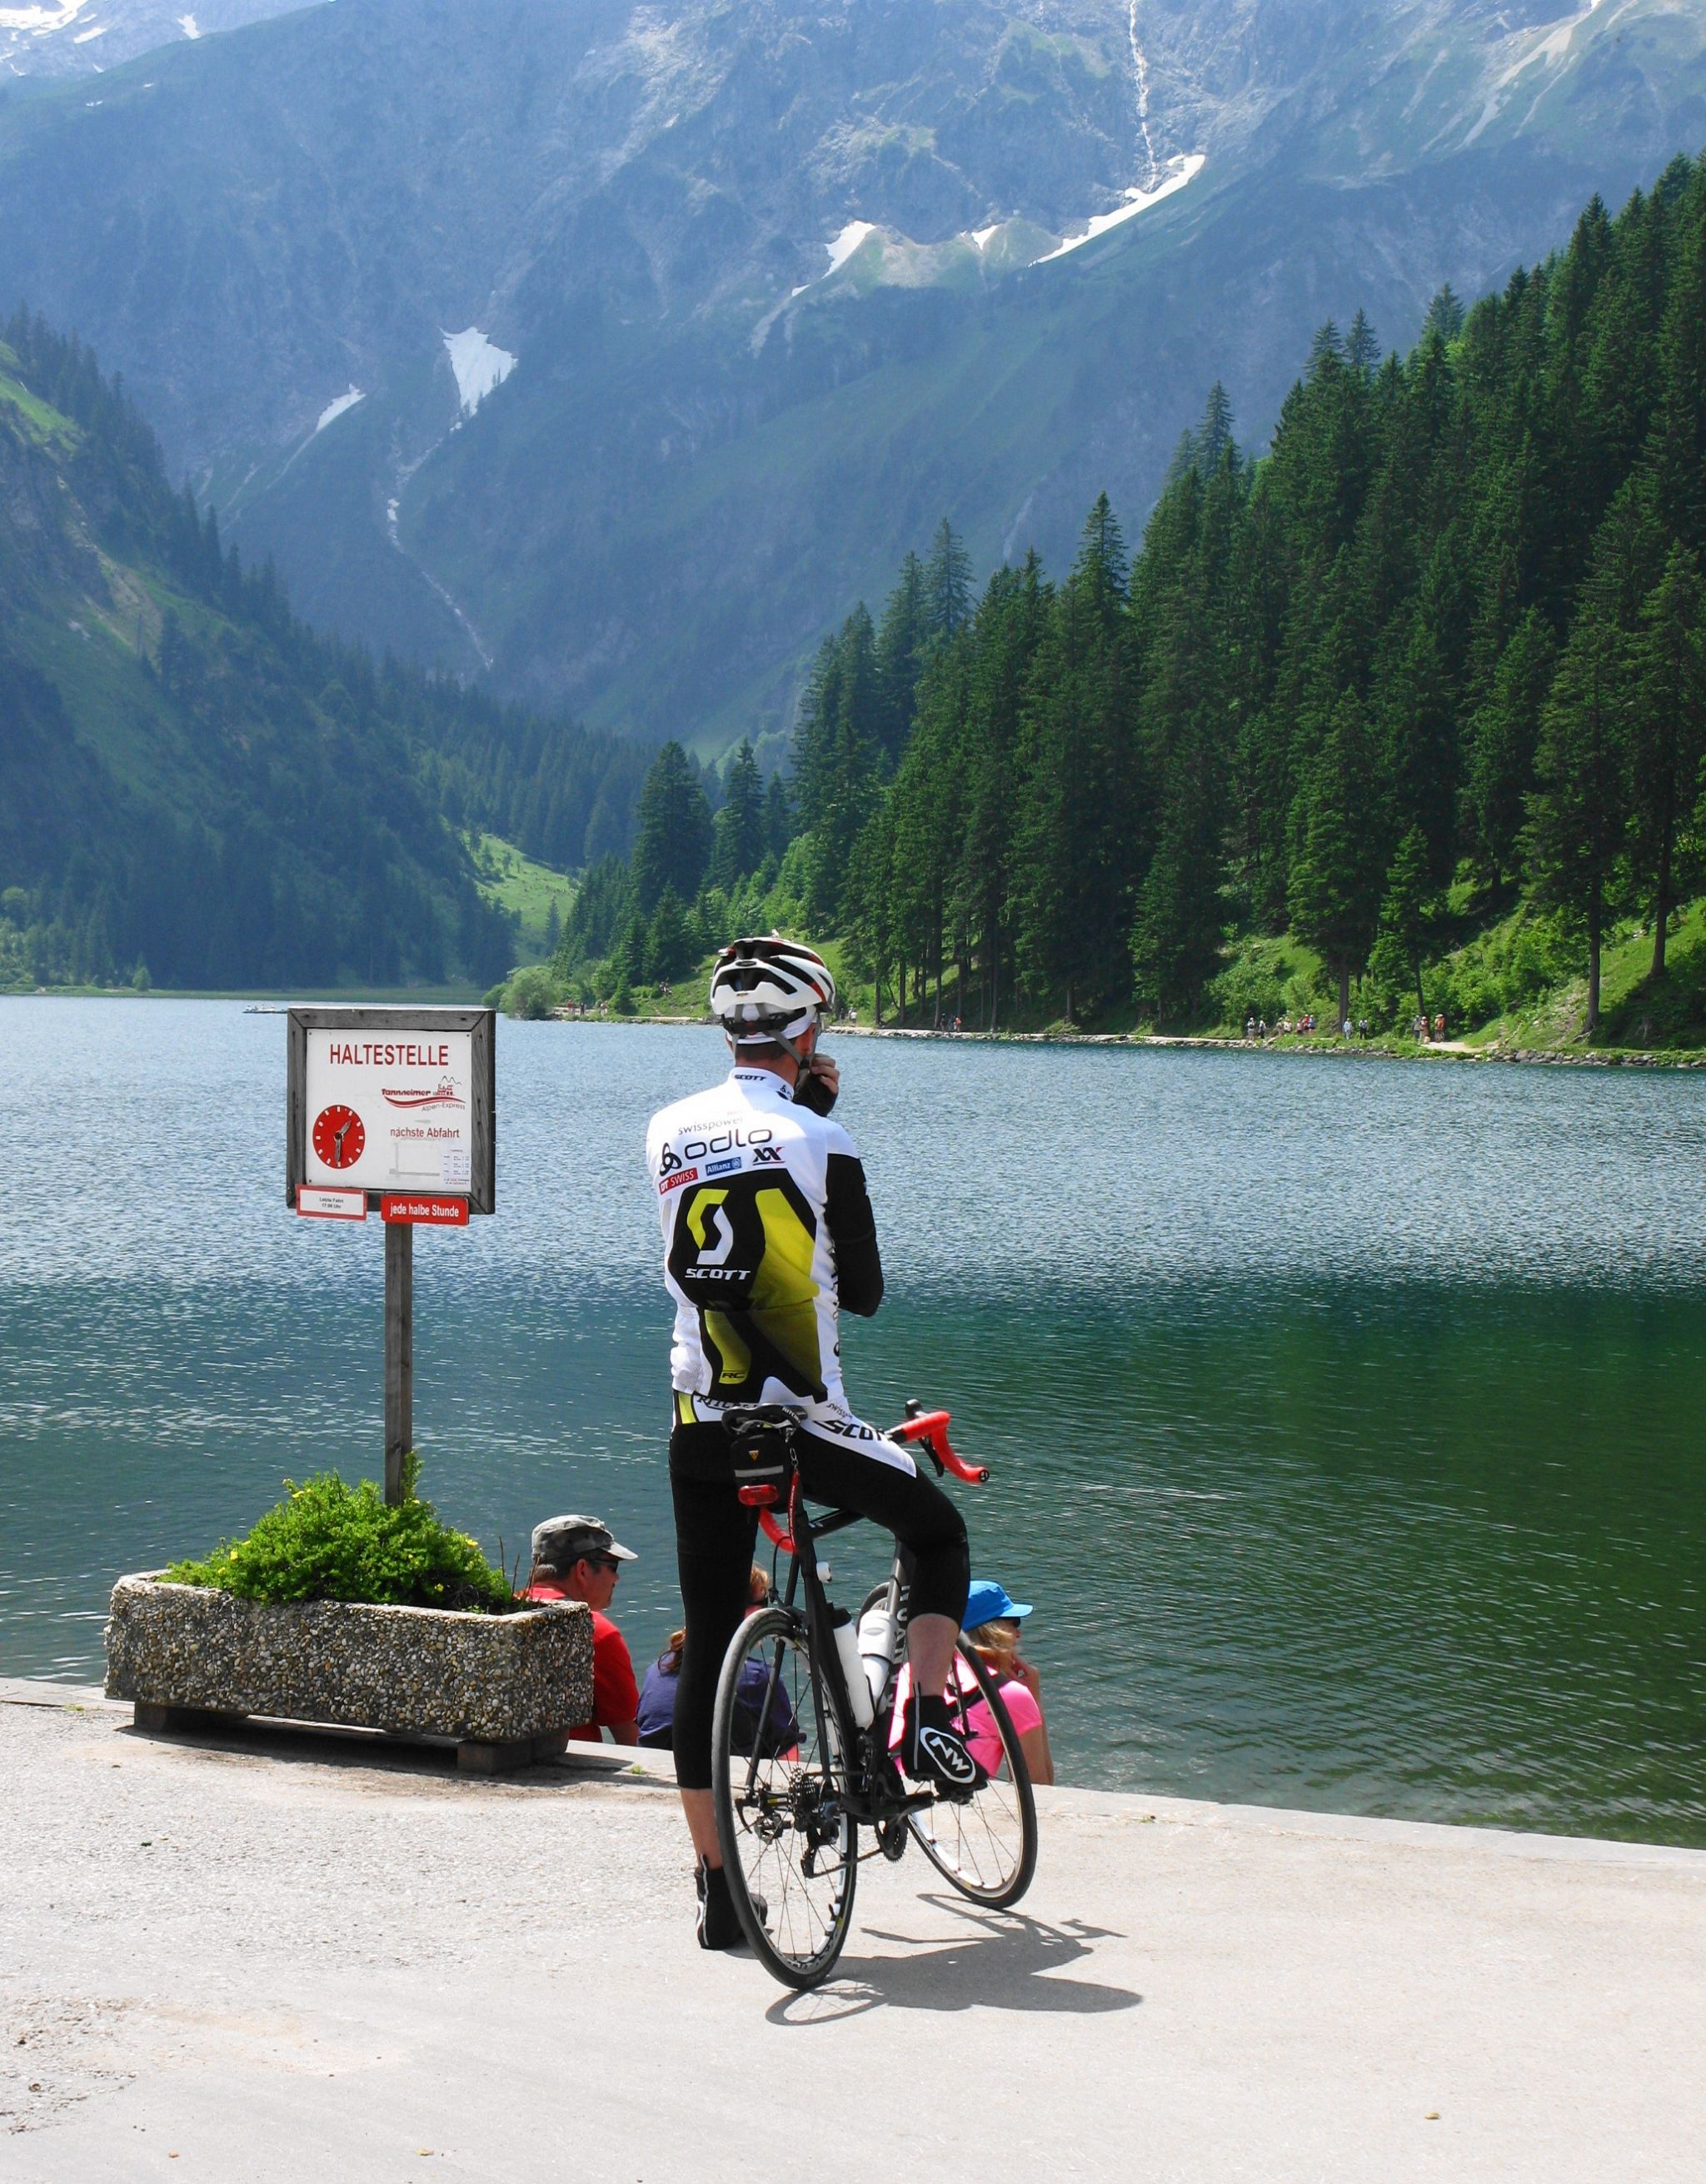 mountain biker resting looking at a lake - reasons to visit the alps